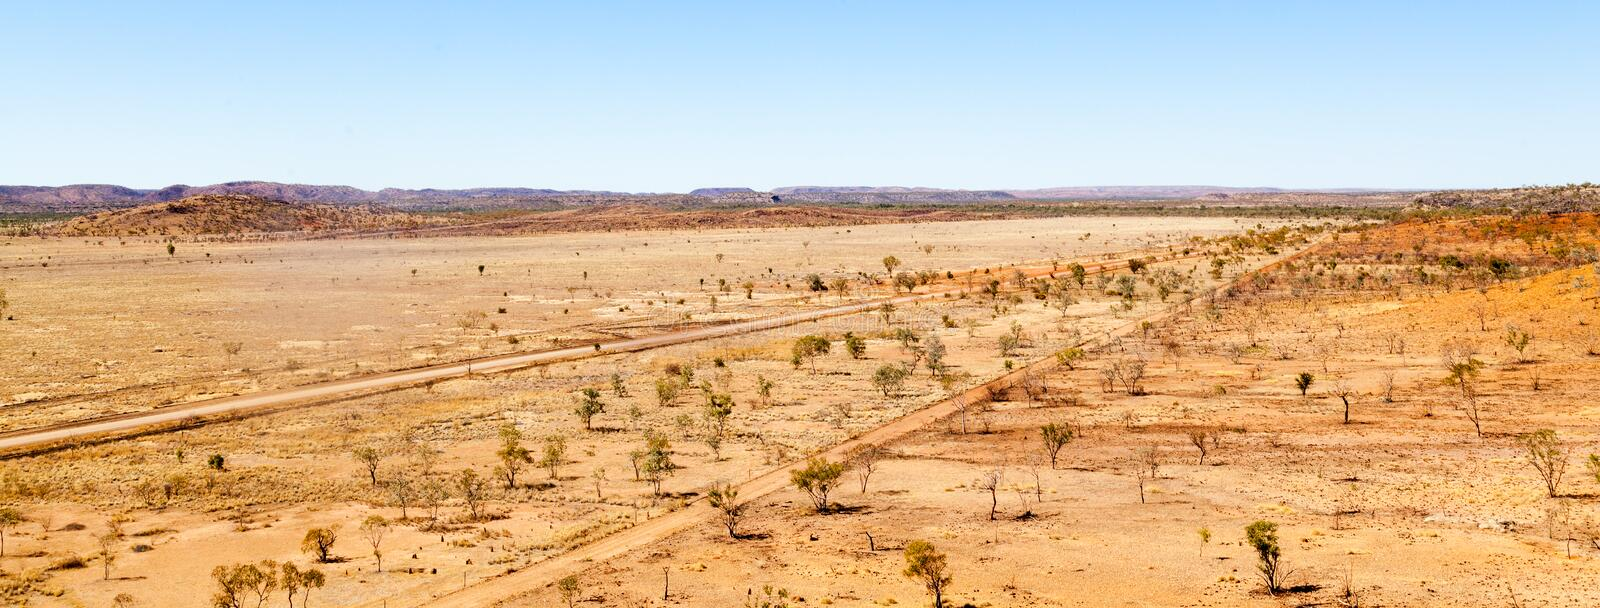 Riversleigh in far outback Queensland royalty free stock photos